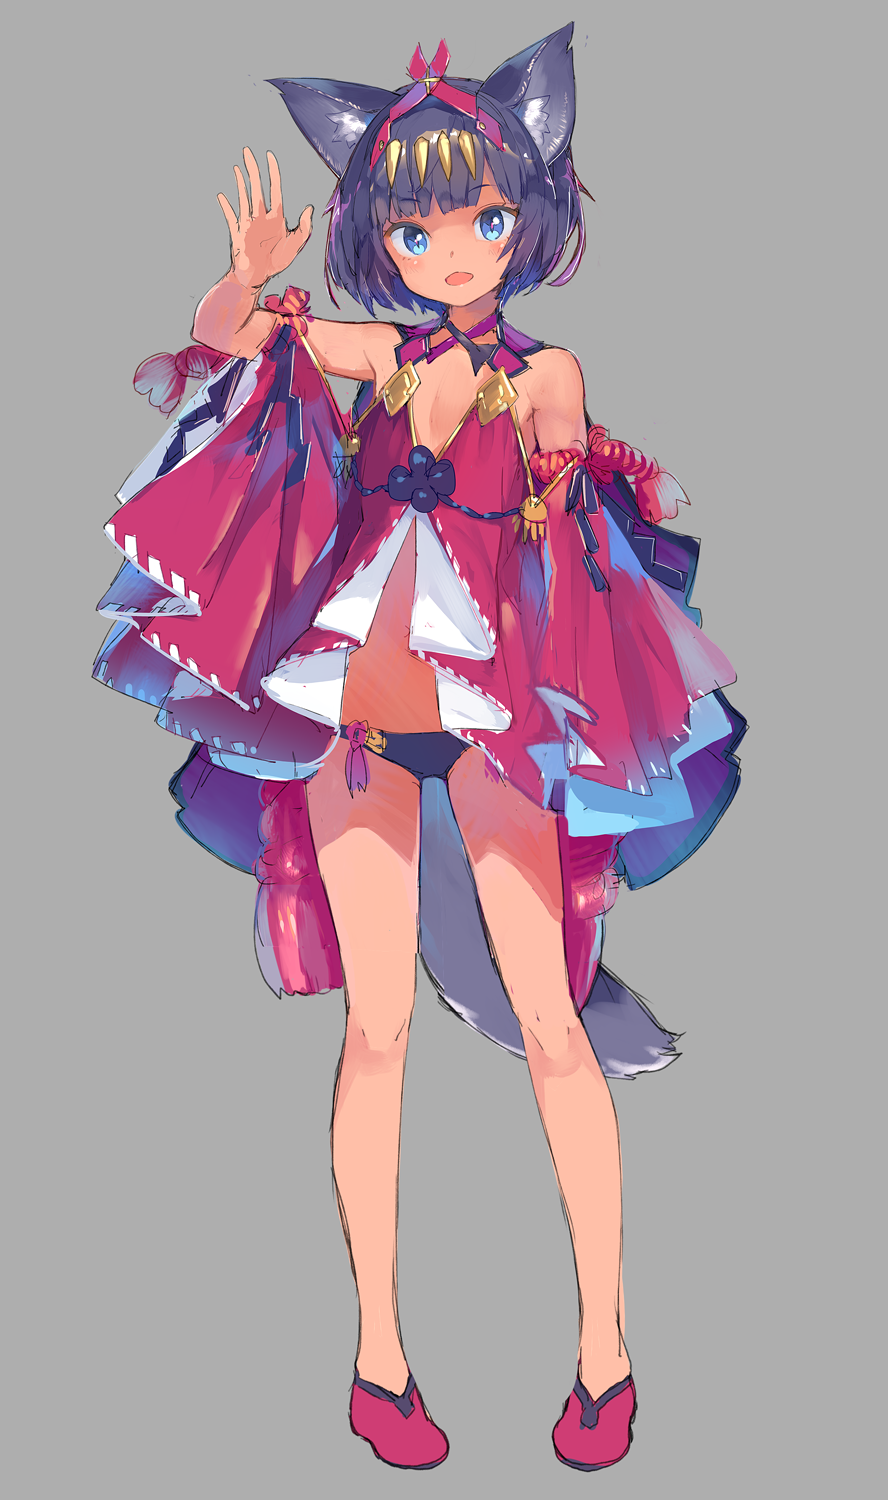 1girl :d animal_ears arm_at_side arm_up bare_shoulders black_hair black_panties blue_eyes blush cat_ears eyebrows_visible_through_hair flat_chest fox_ears fox_tail full_body grey_background headpiece highres legs_apart long_sleeves looking_at_viewer no_socks open_mouth original panties pigeon-toed red_footwear revealing_clothes shinbasaki shiny shiny_hair short_hair simple_background sketch smile solo standing tail underwear wide_sleeves